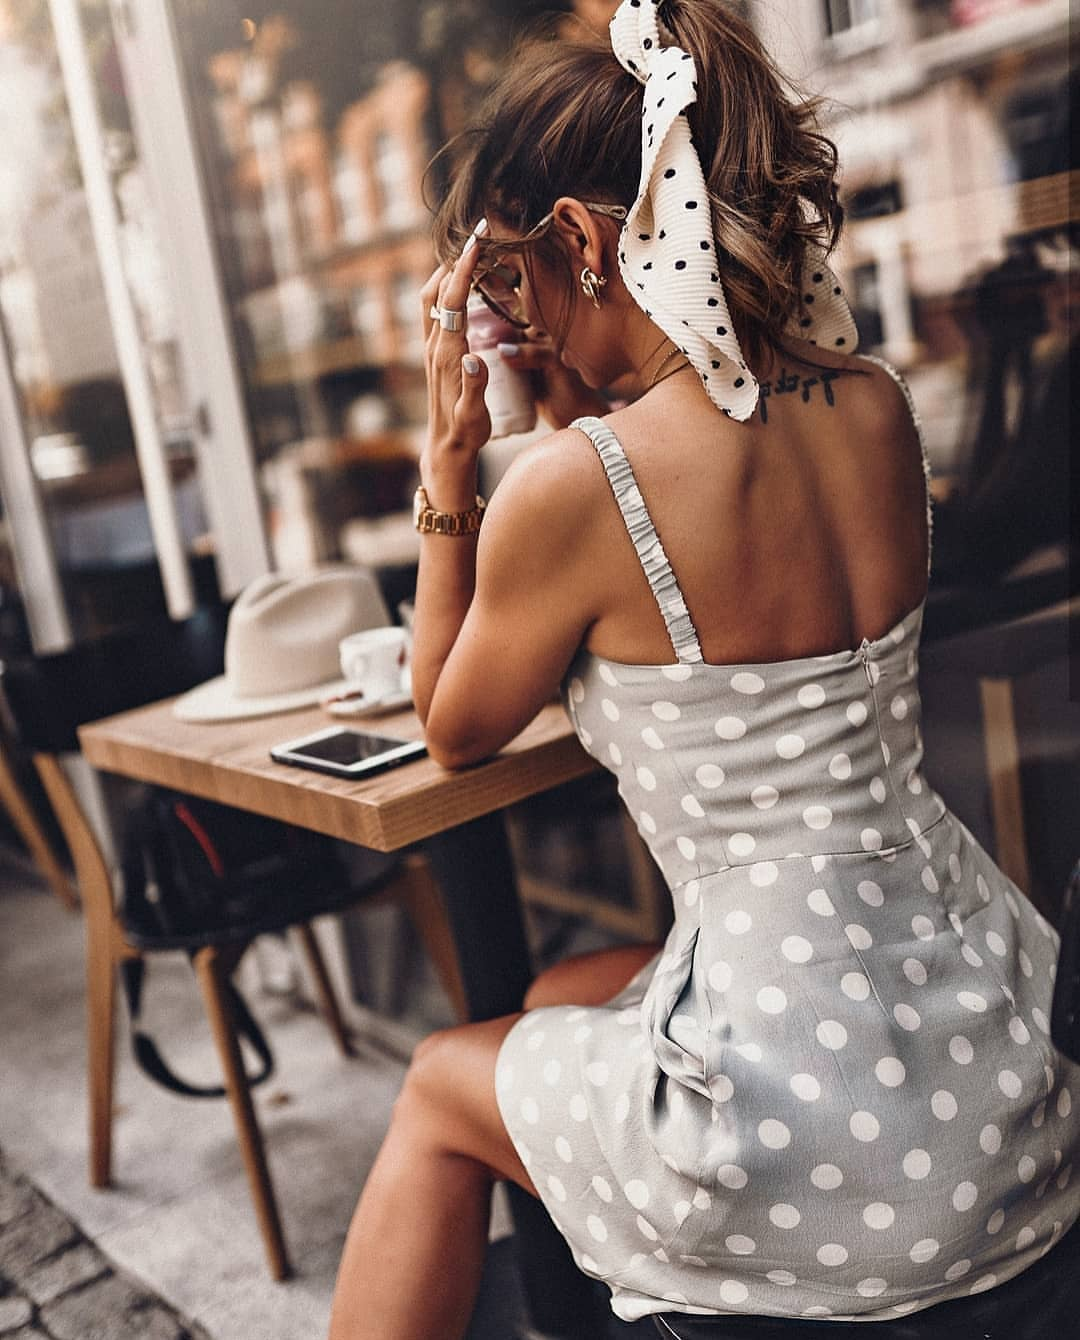 Light Grey Pencil Dress In White Polka Dots For Summer City Days 2019